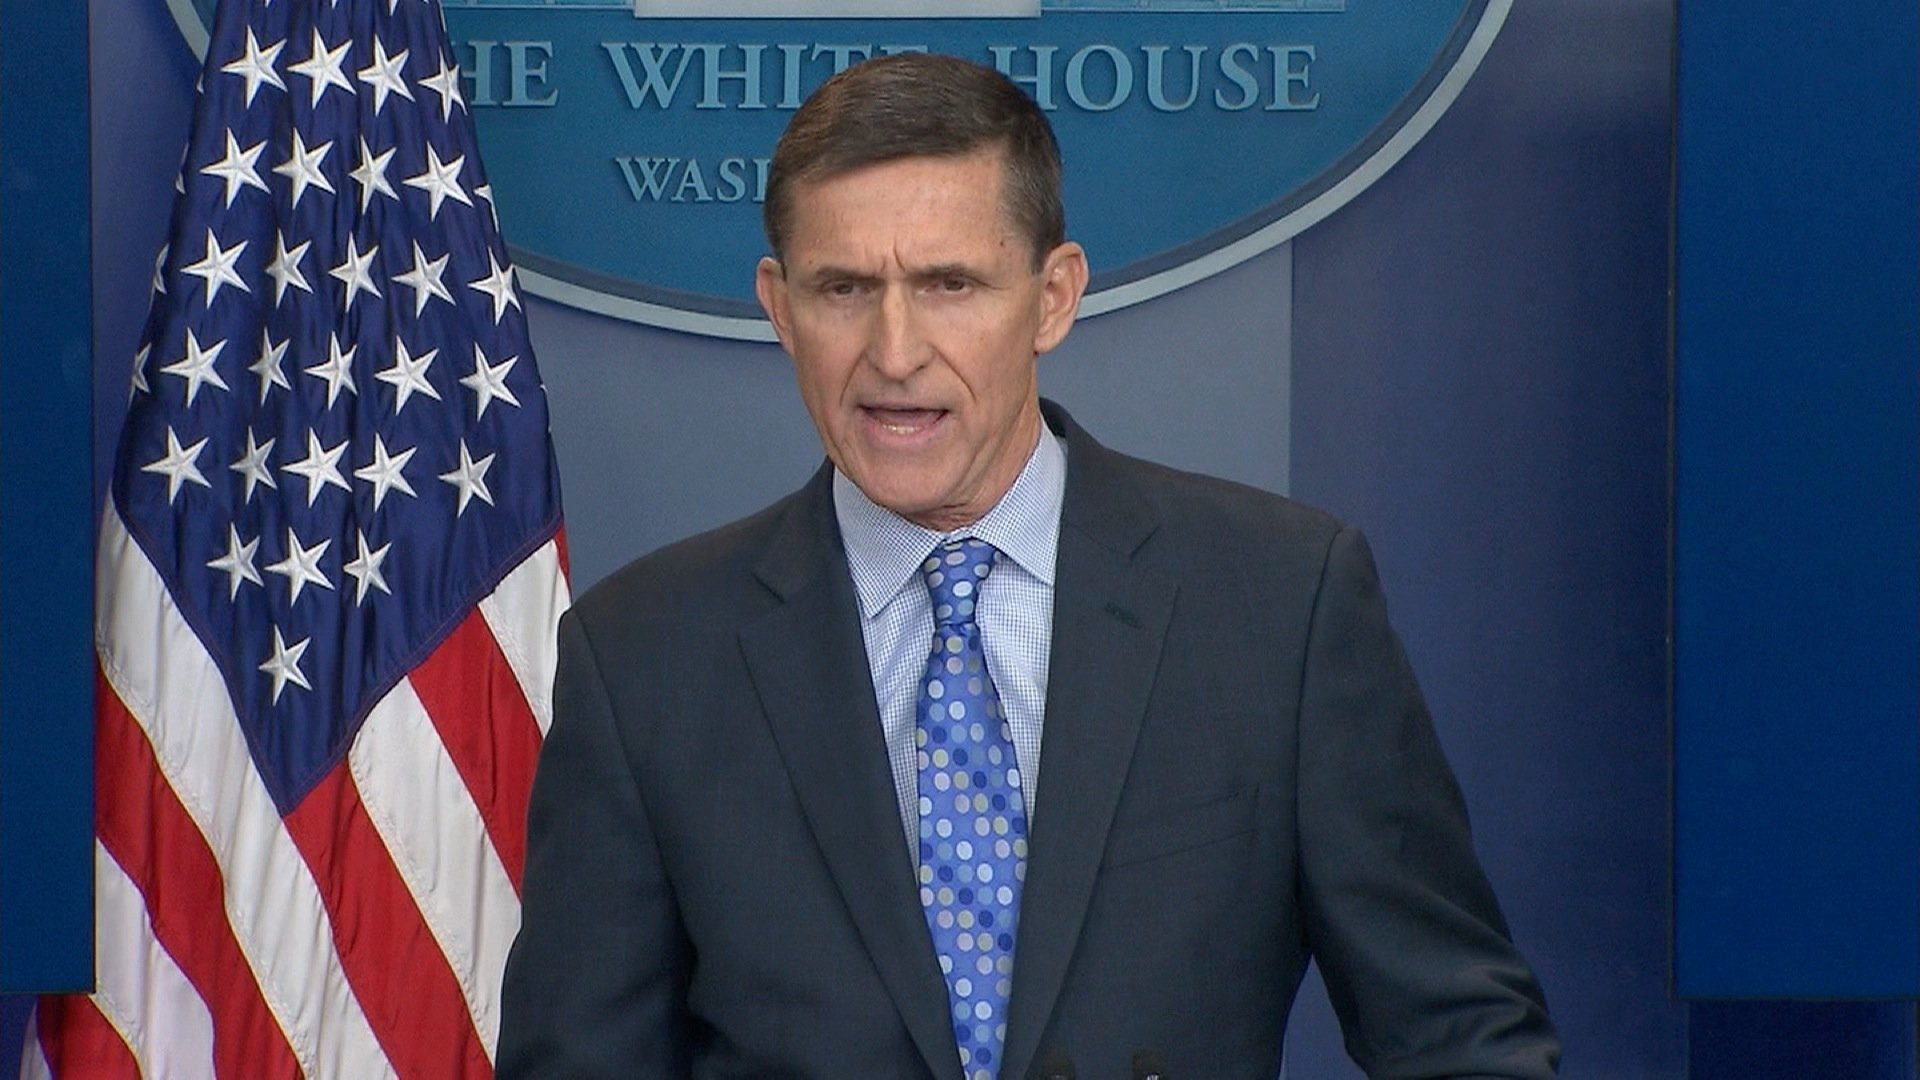 Flynn didn't disclose role in Saudi deal with Russians, congressional letter says